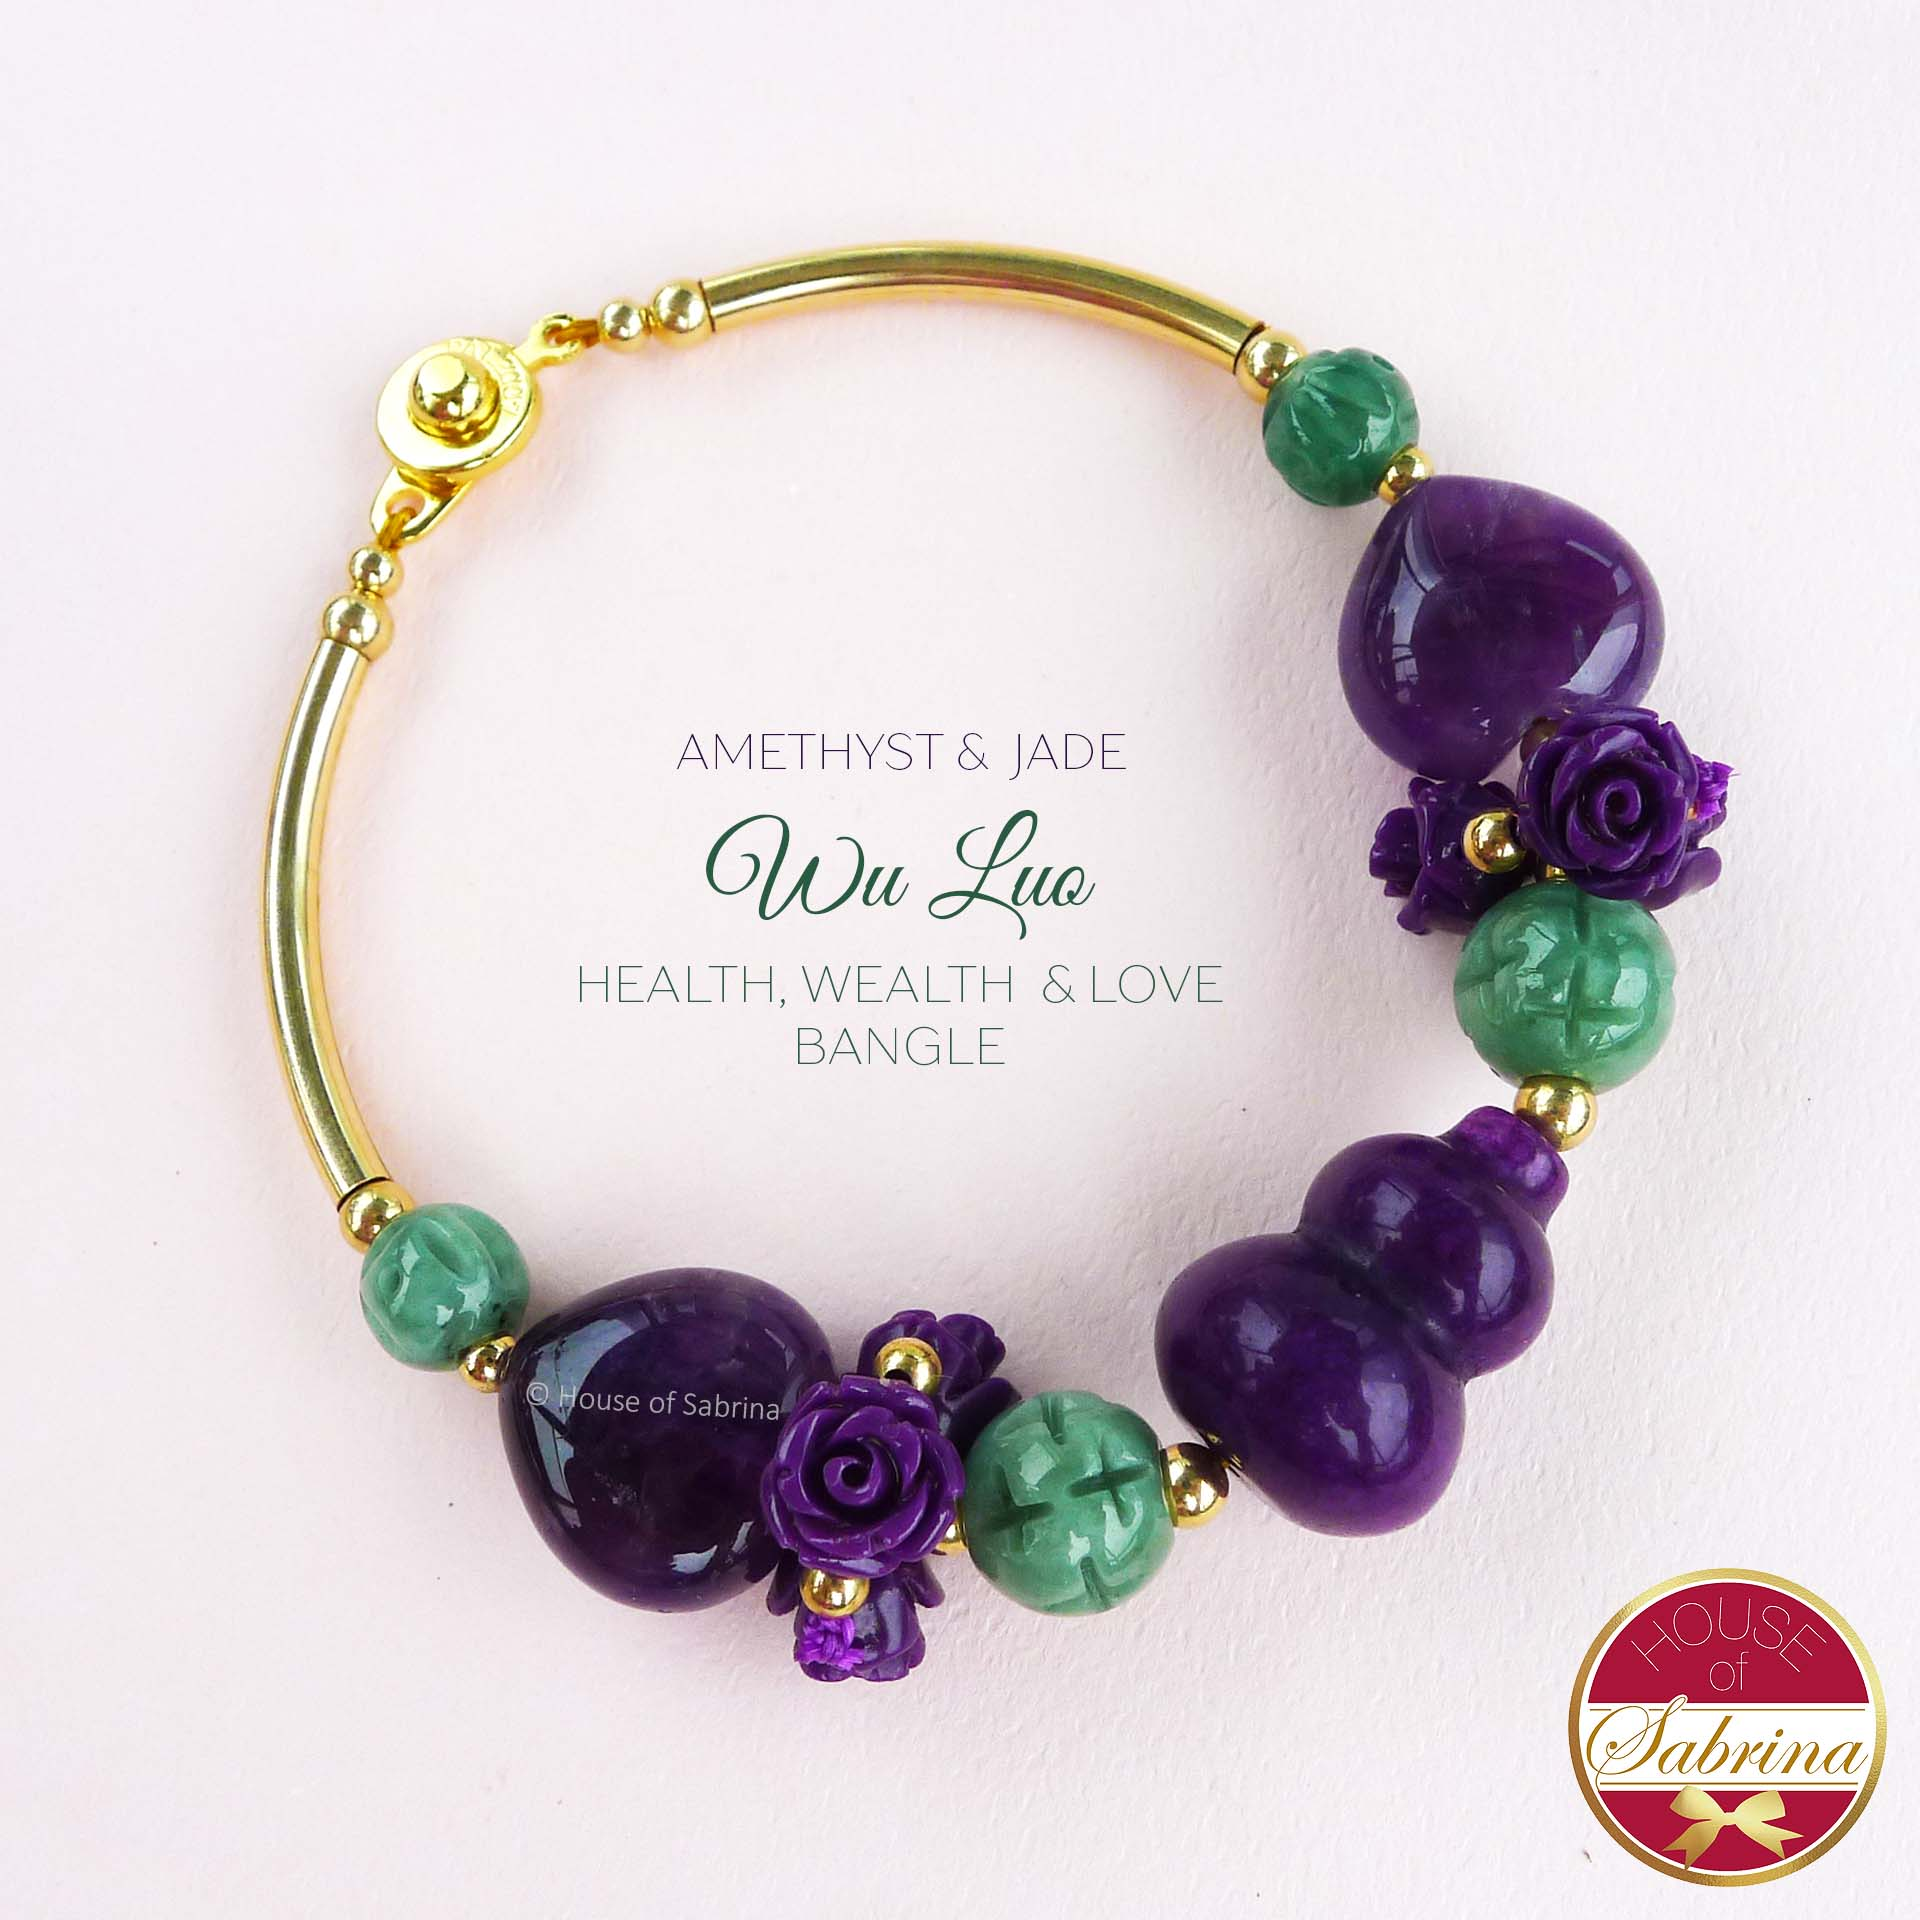 Floral Half Bangle Amethyst & Jade Wu Luo Health Lucky Charm